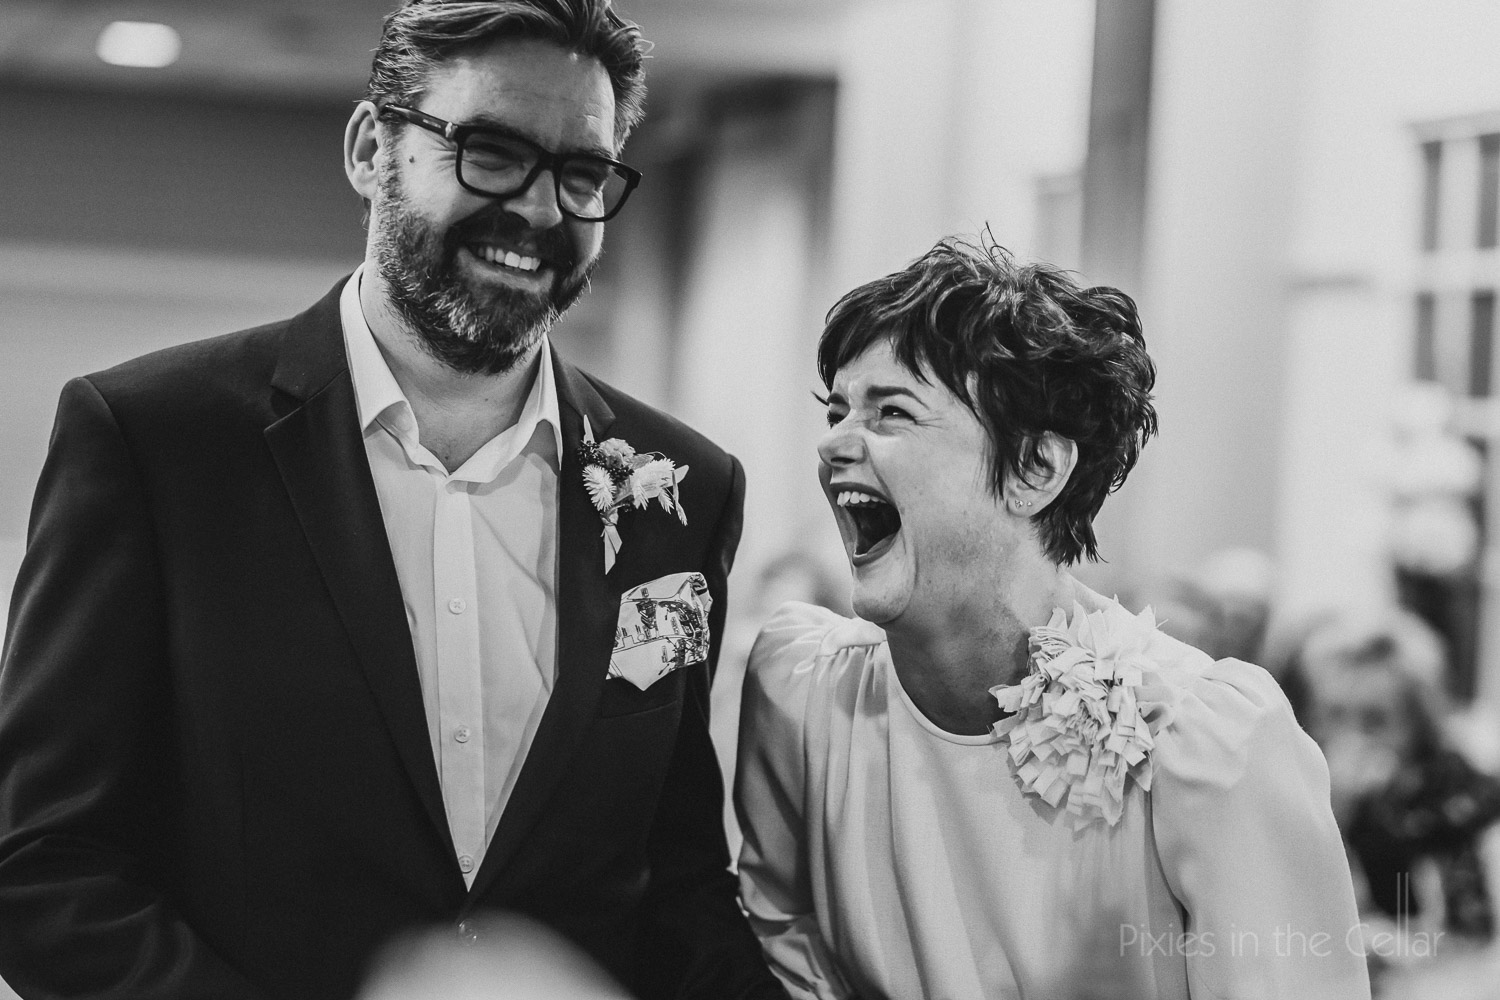 favourite wedding photos real laughs Manchester couple